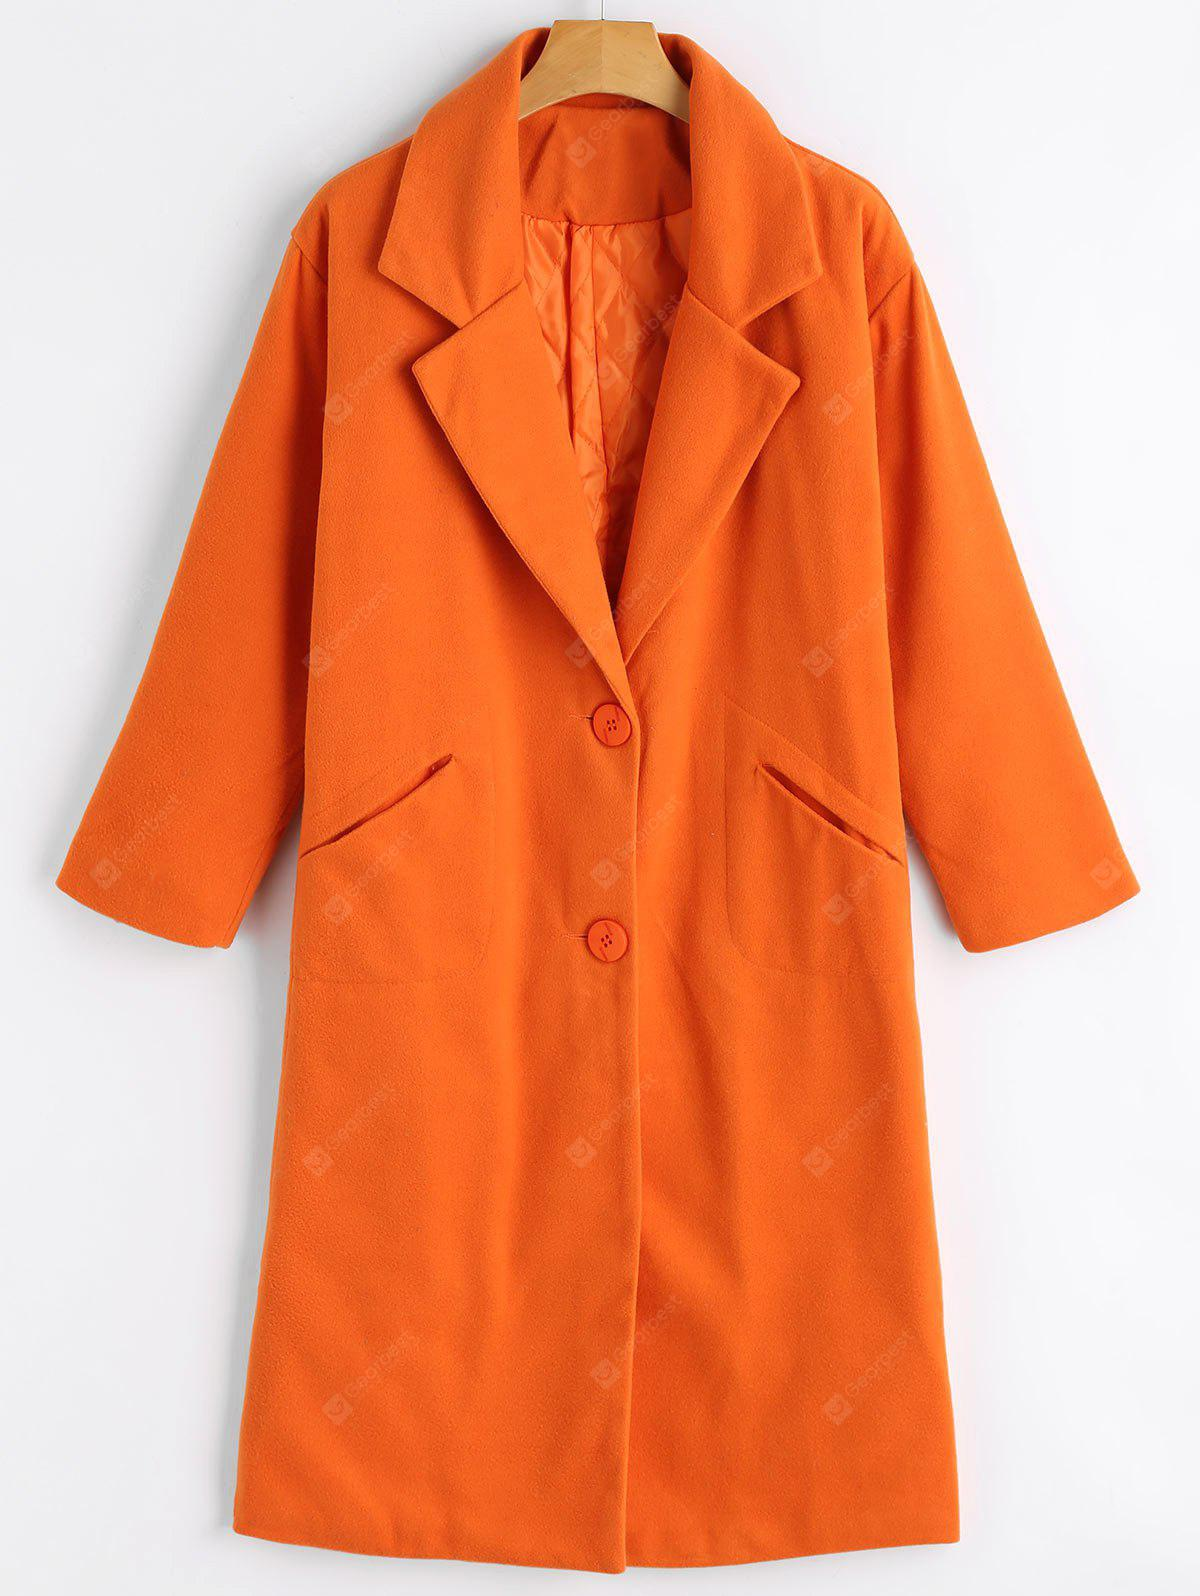 Button Up Lapel Coat with Pockets